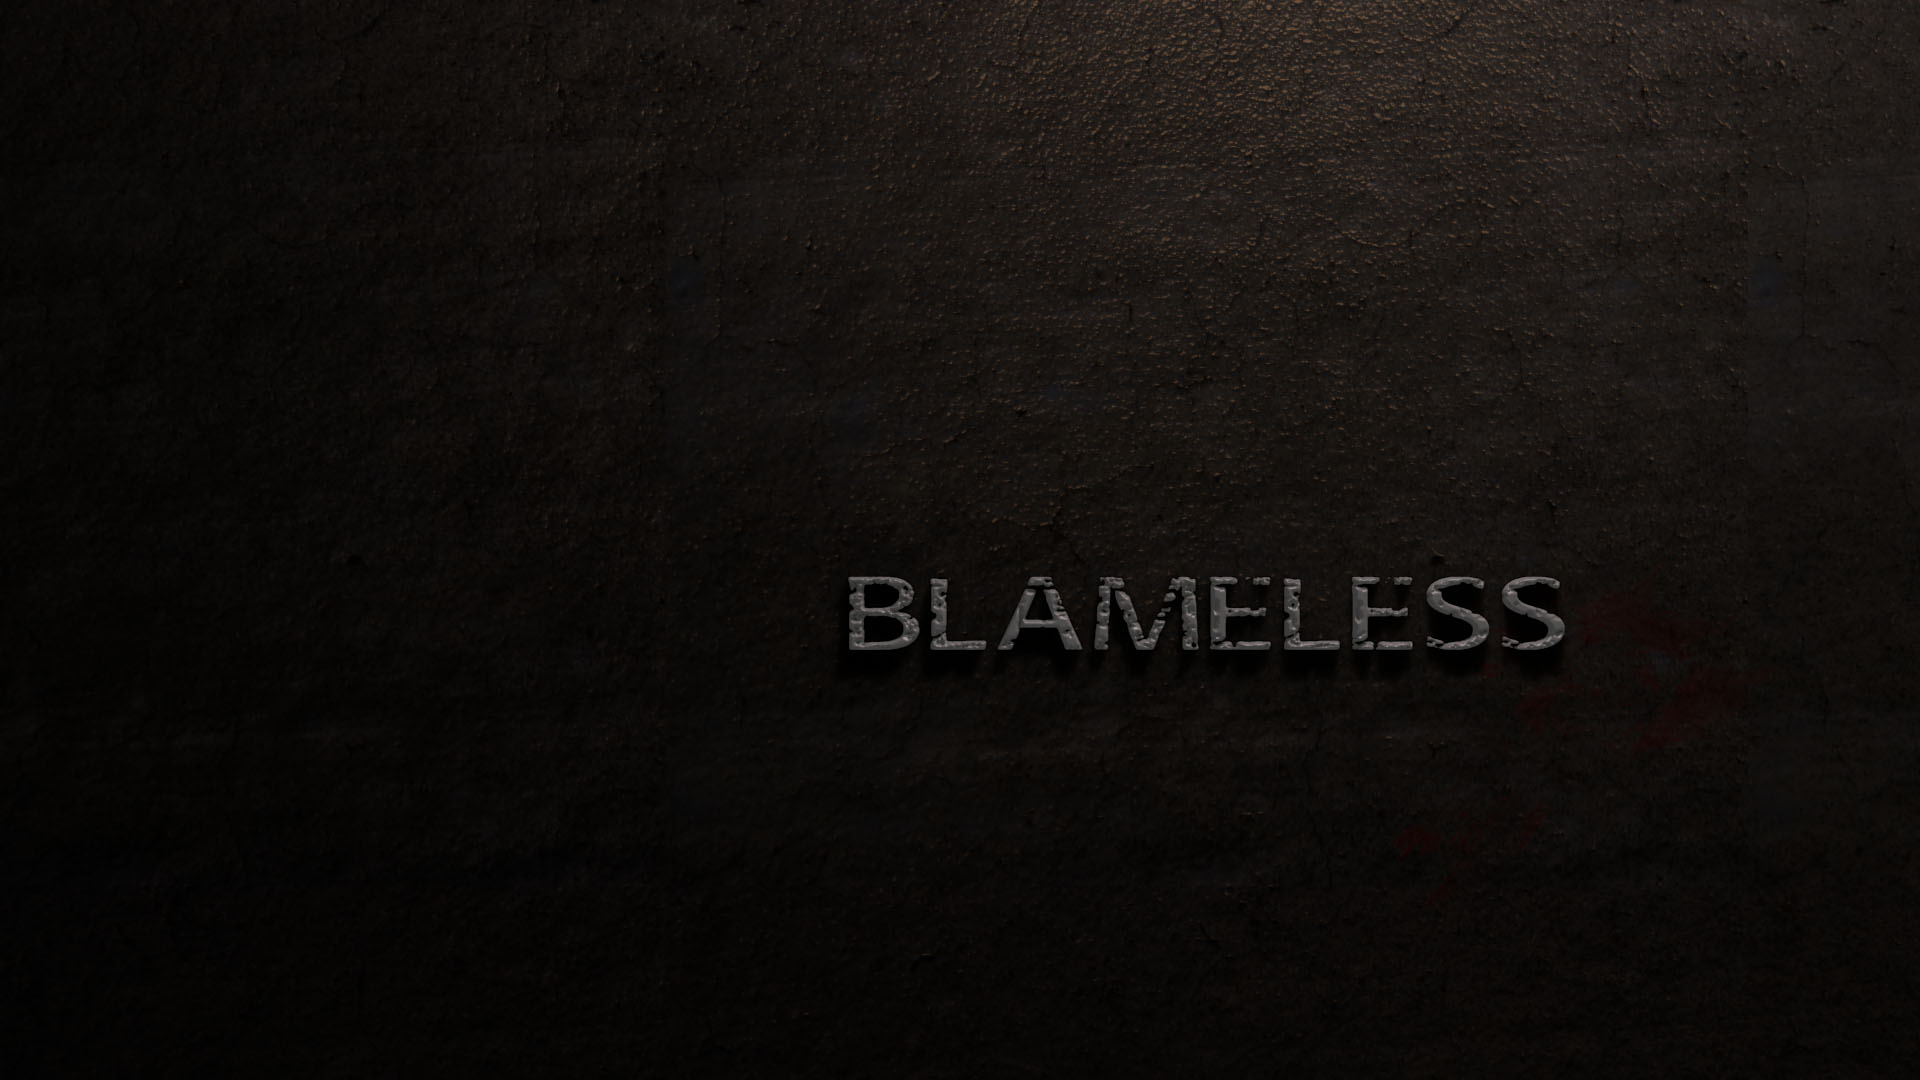 Blameless Menu Background